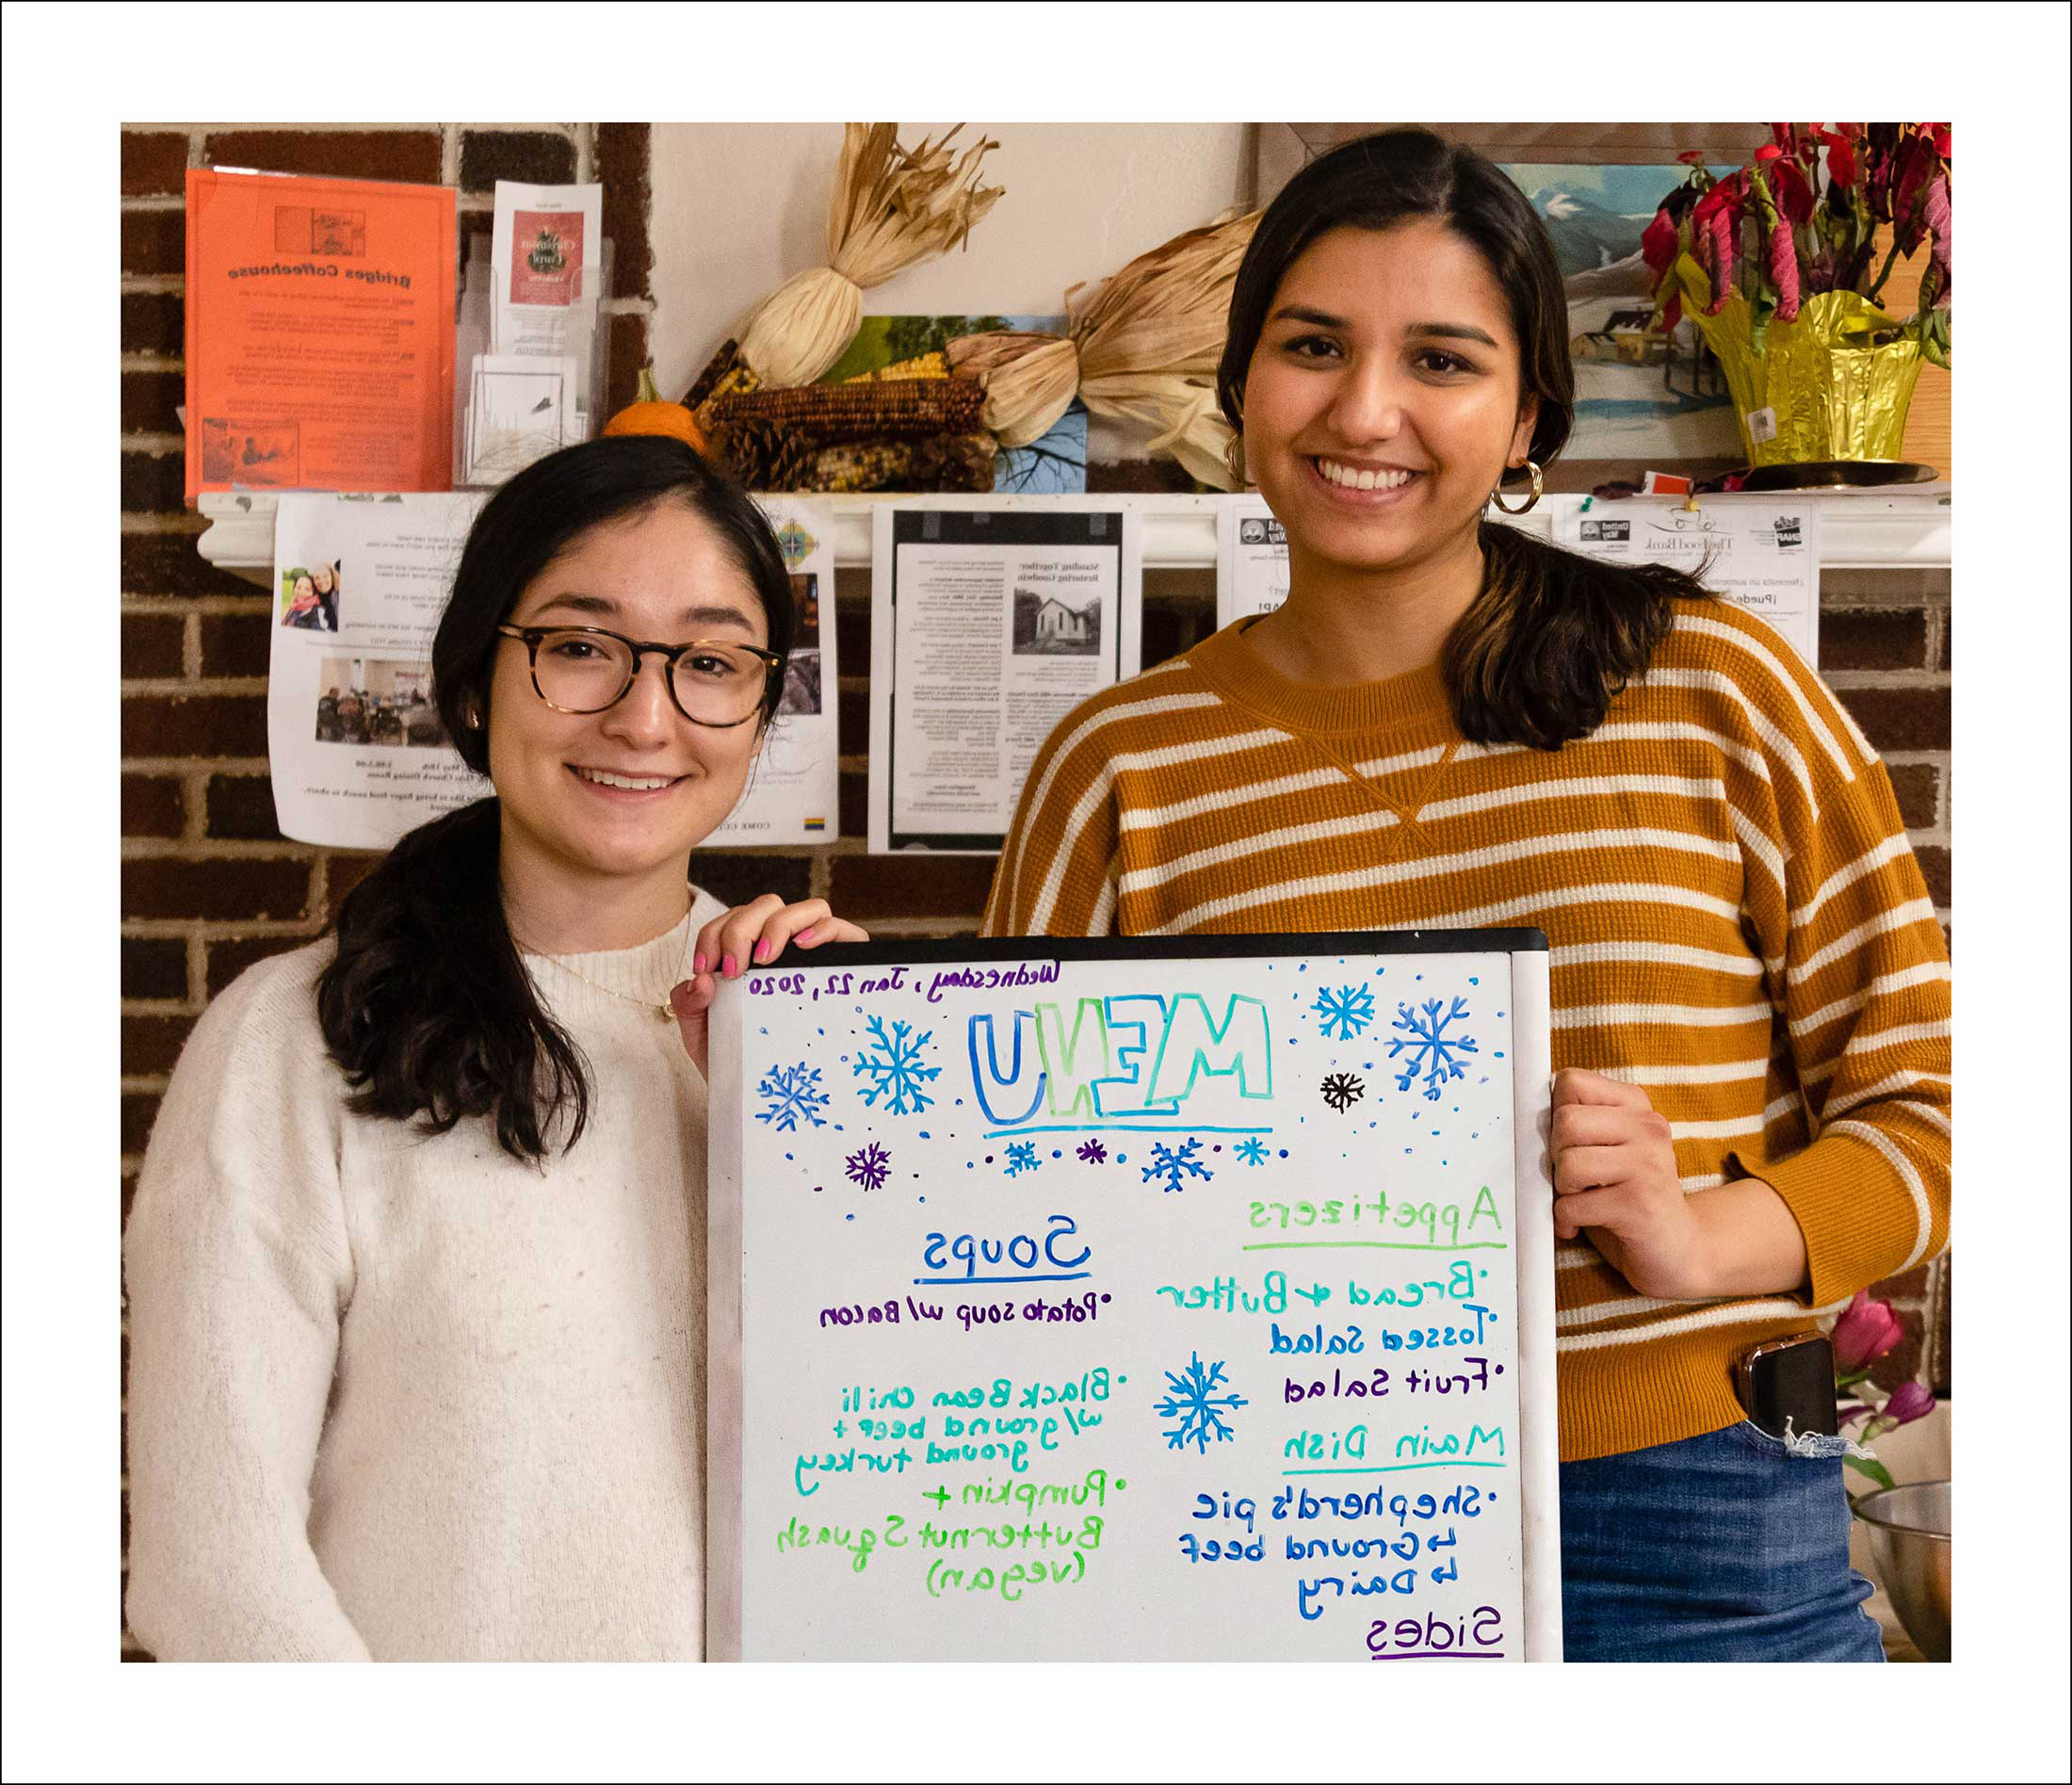 Two women holding a white board covered with writing